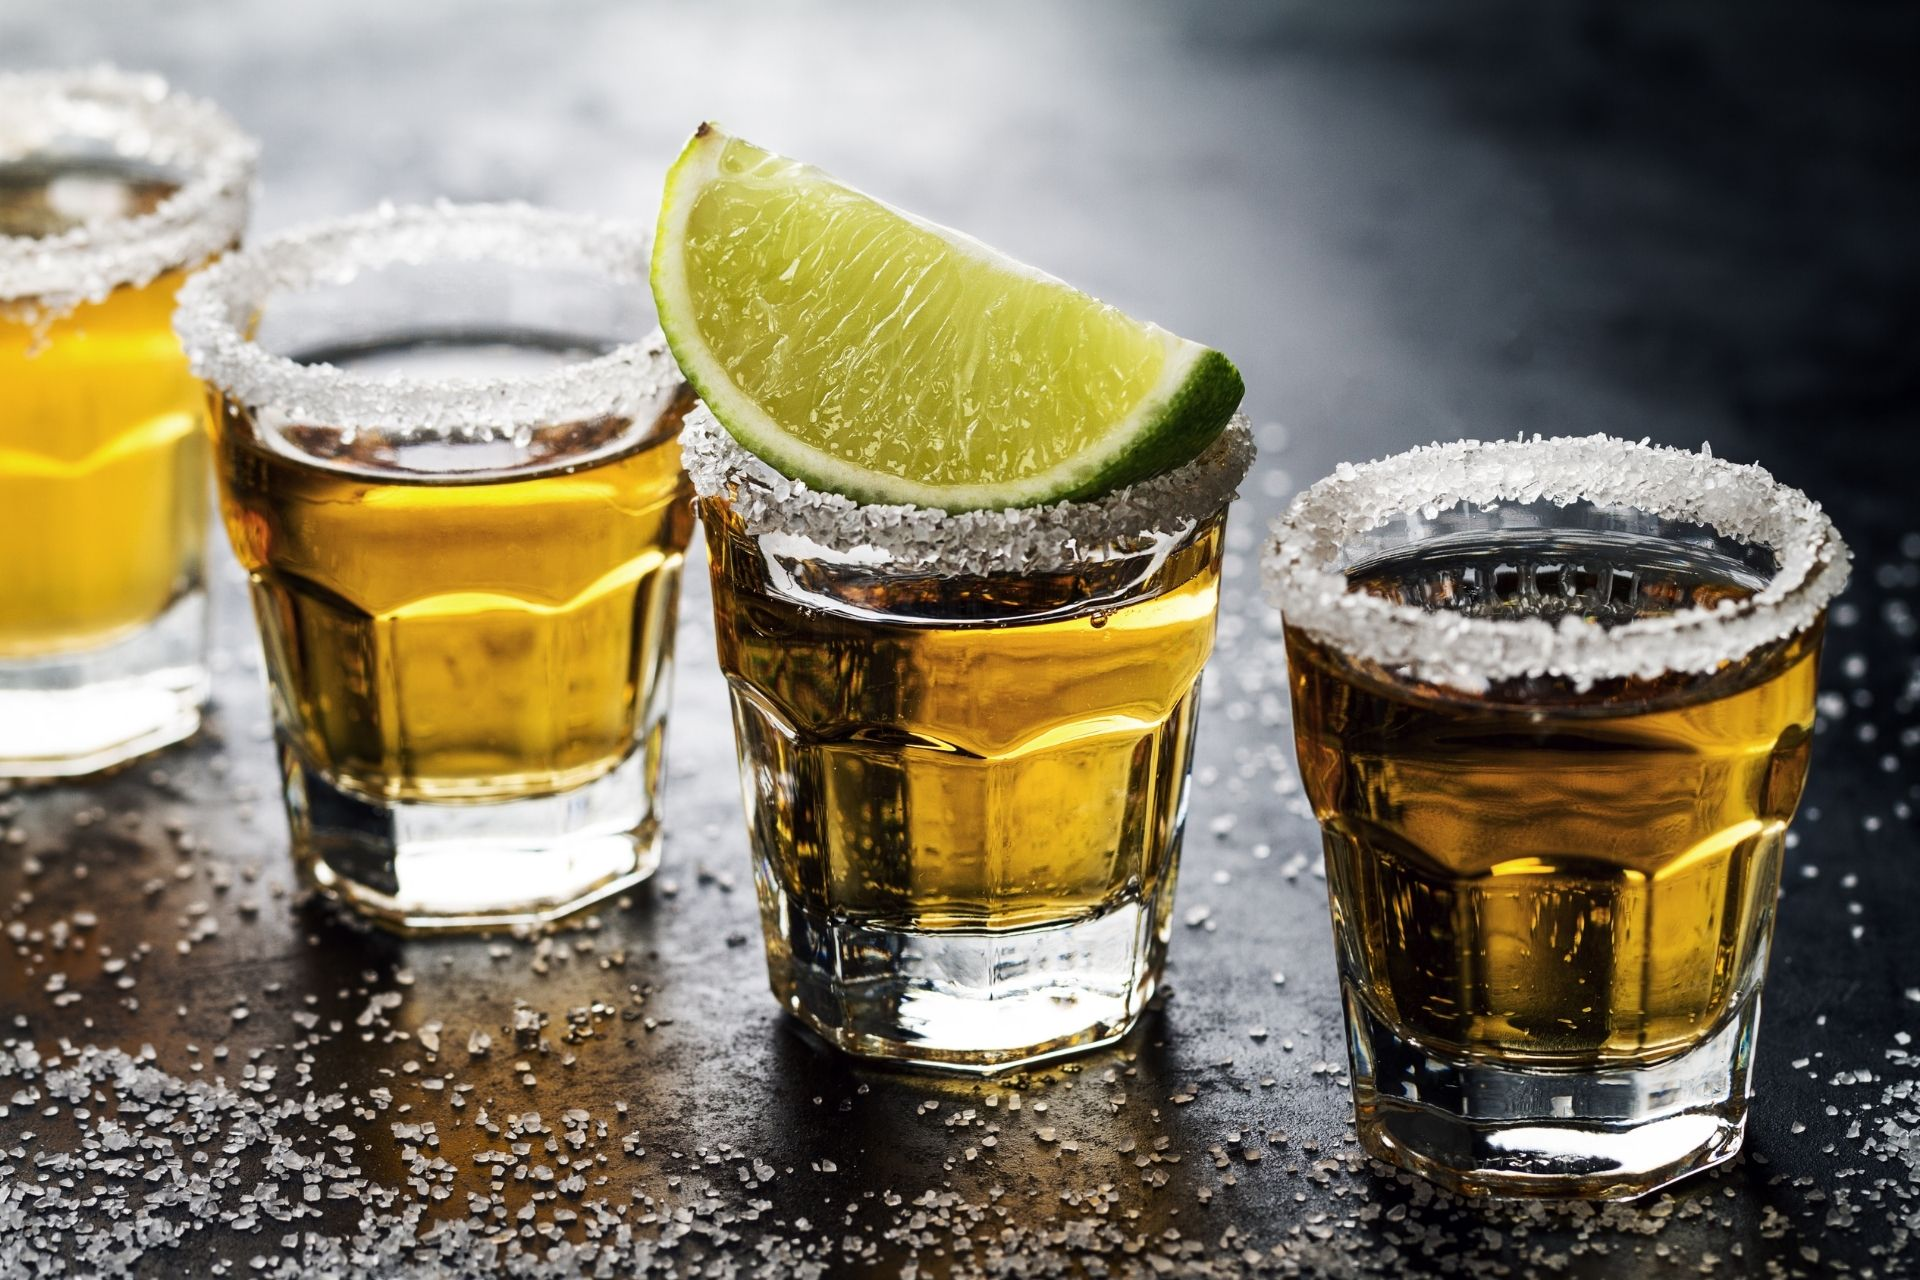 10 Best Chasers For Tequila